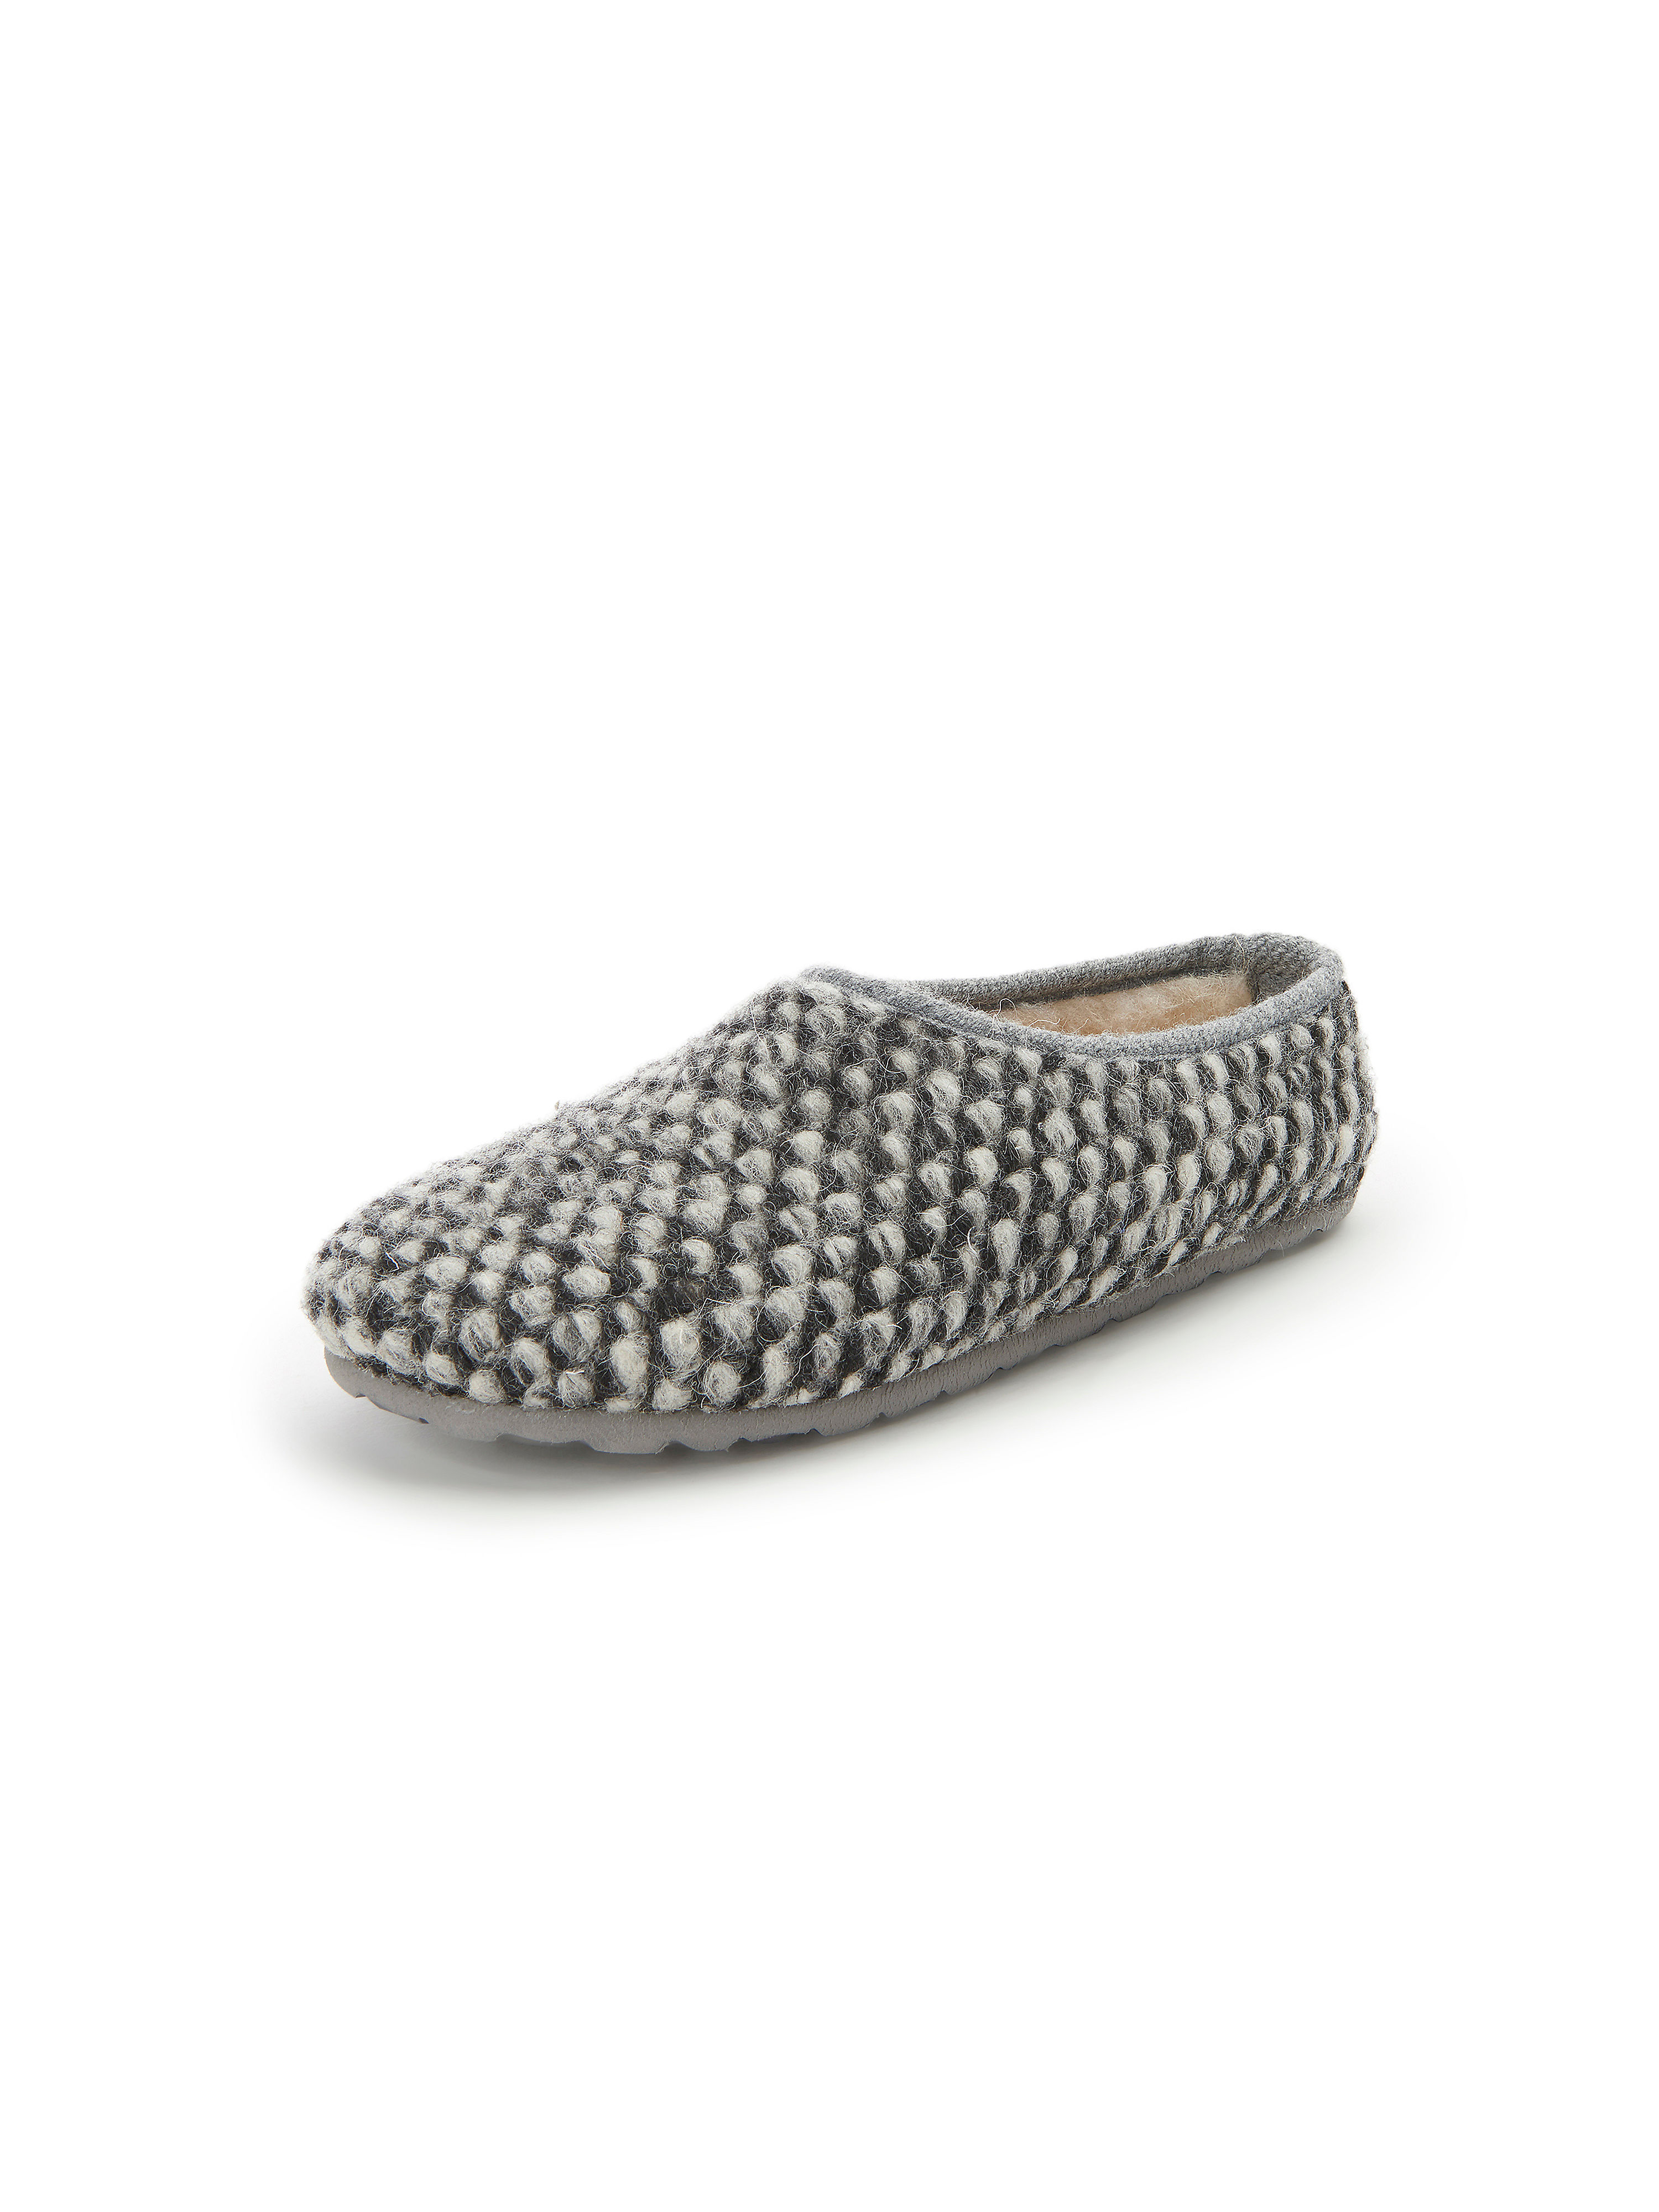 Les mules Ghibi gris taille 39